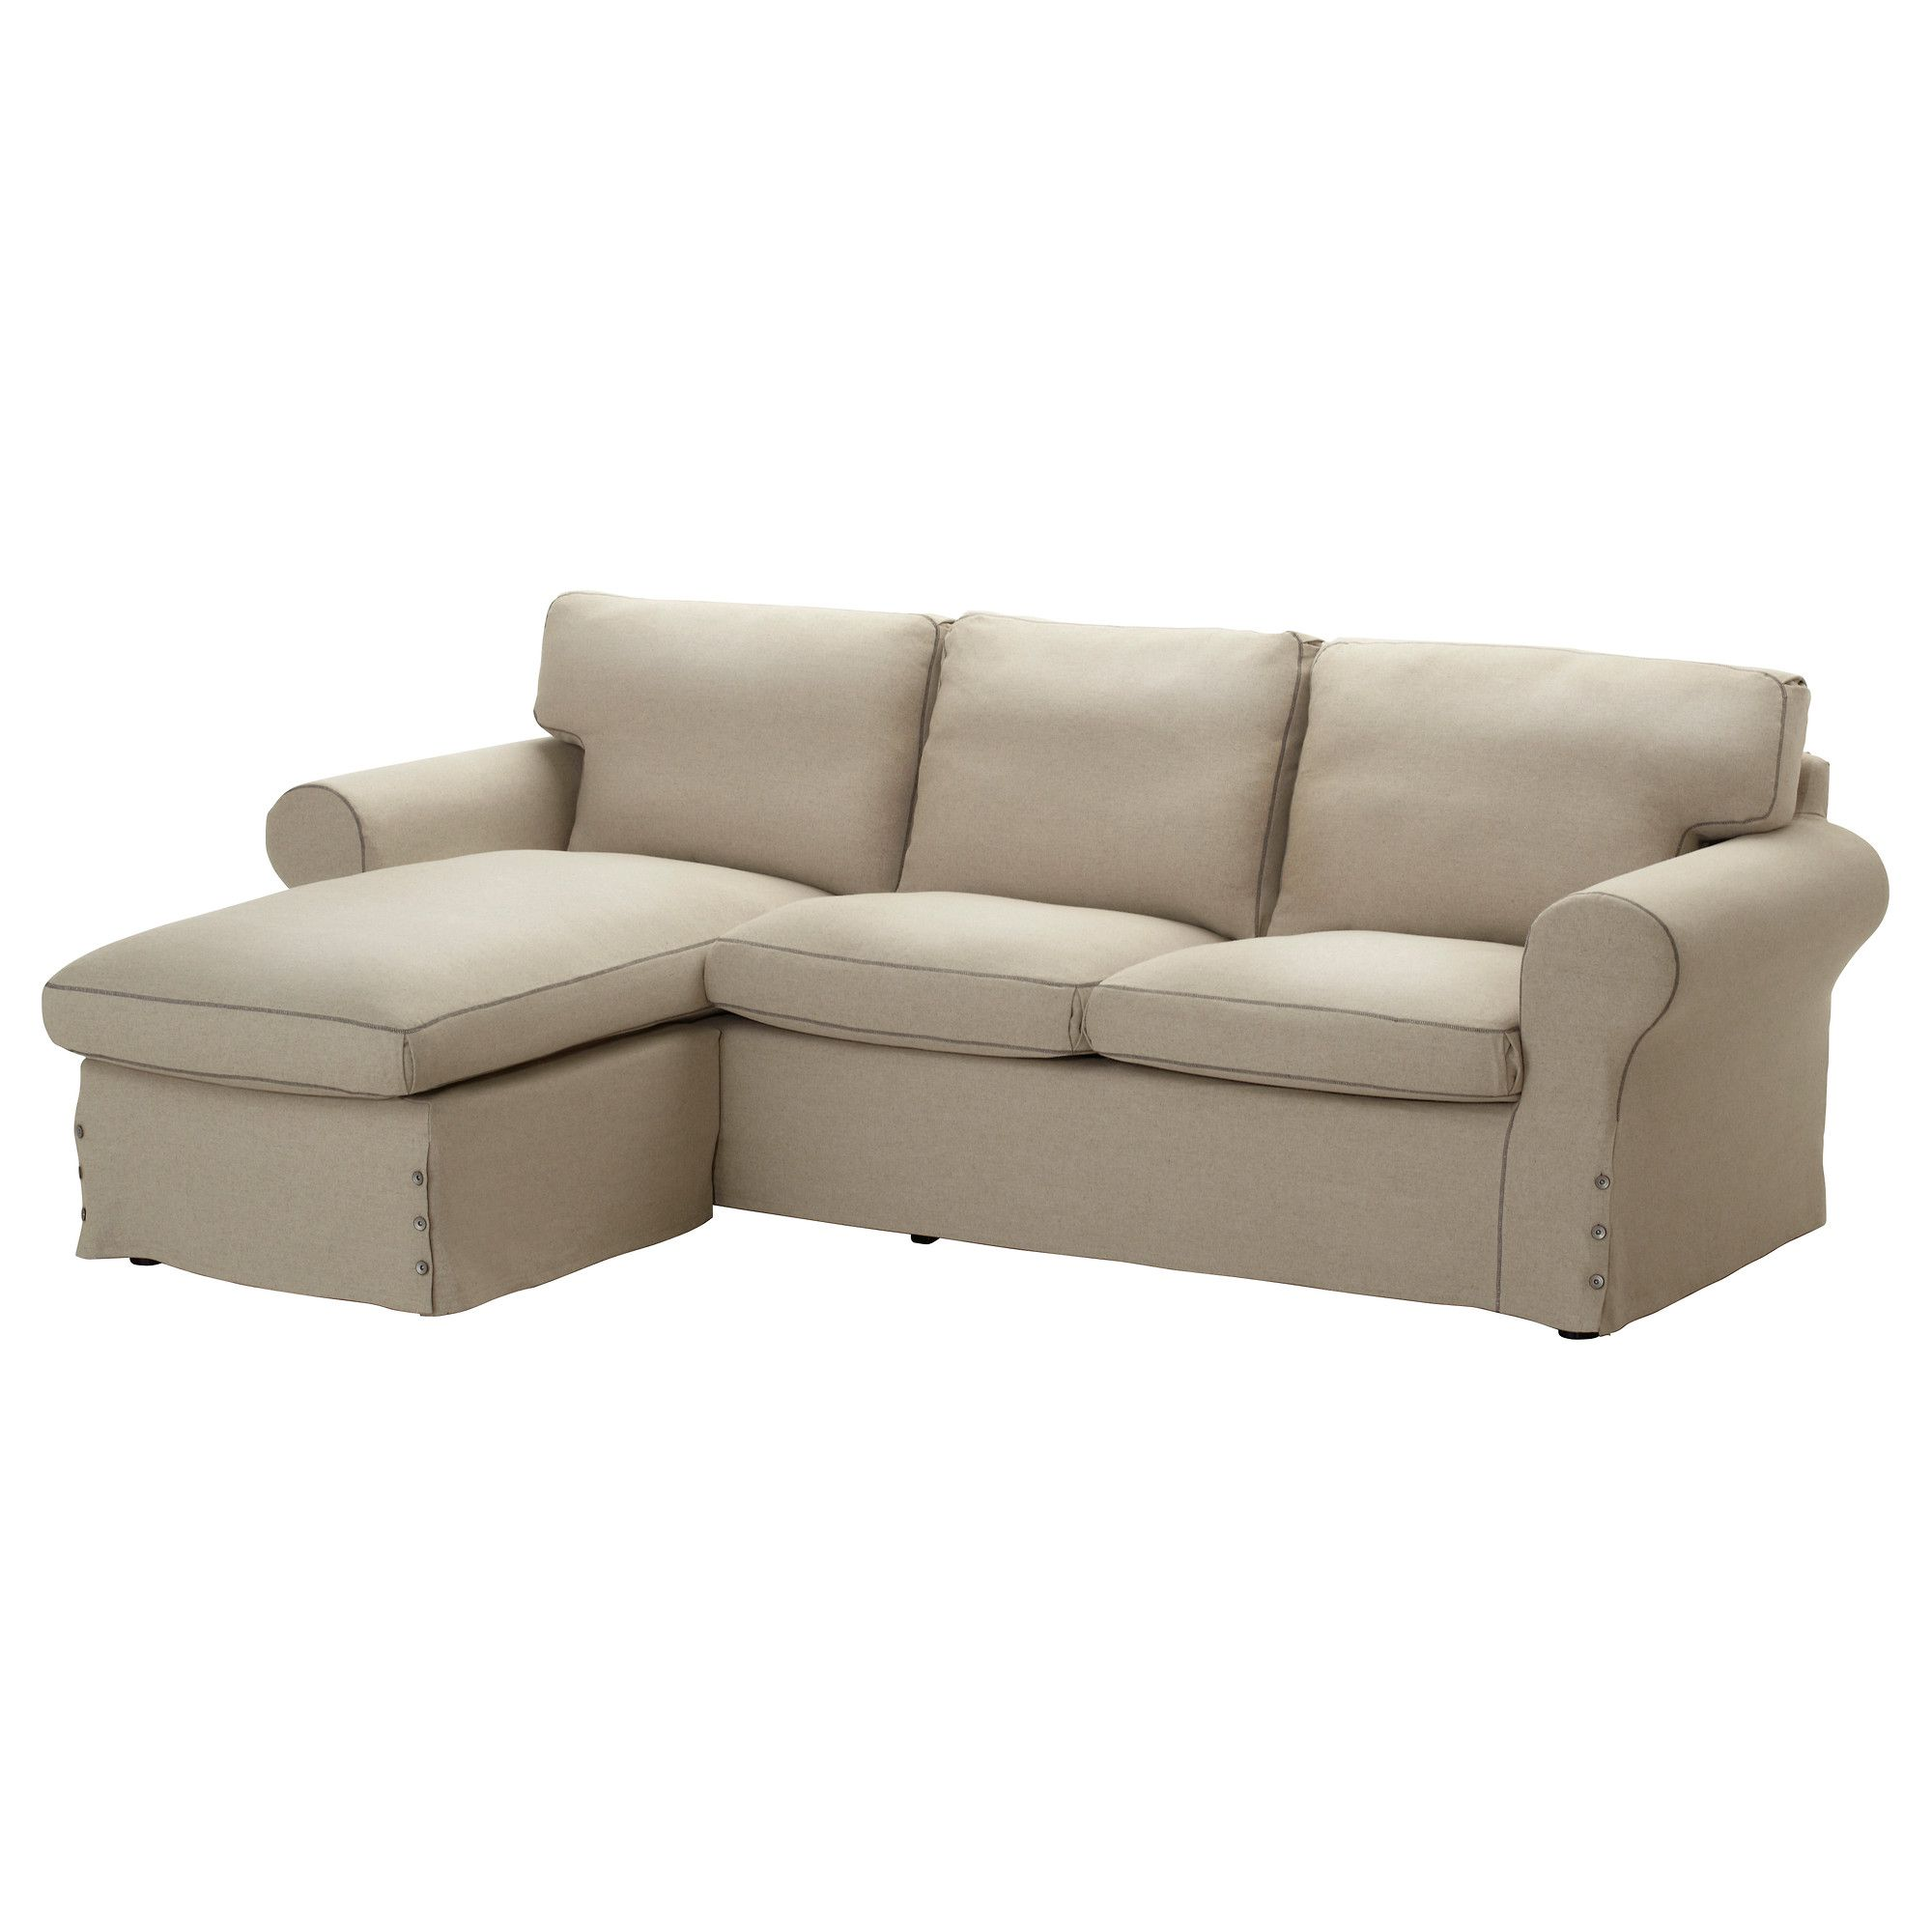 EKTORP Loveseat and chaise lounge Risane natural IKEA